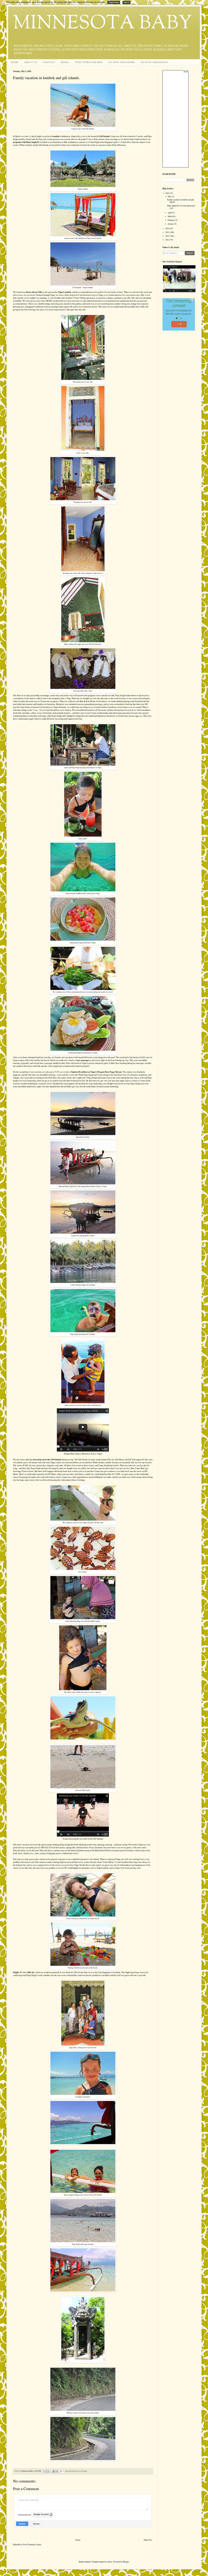 family vacation in lombok and gili islands - minnesotababy.blogspot.com